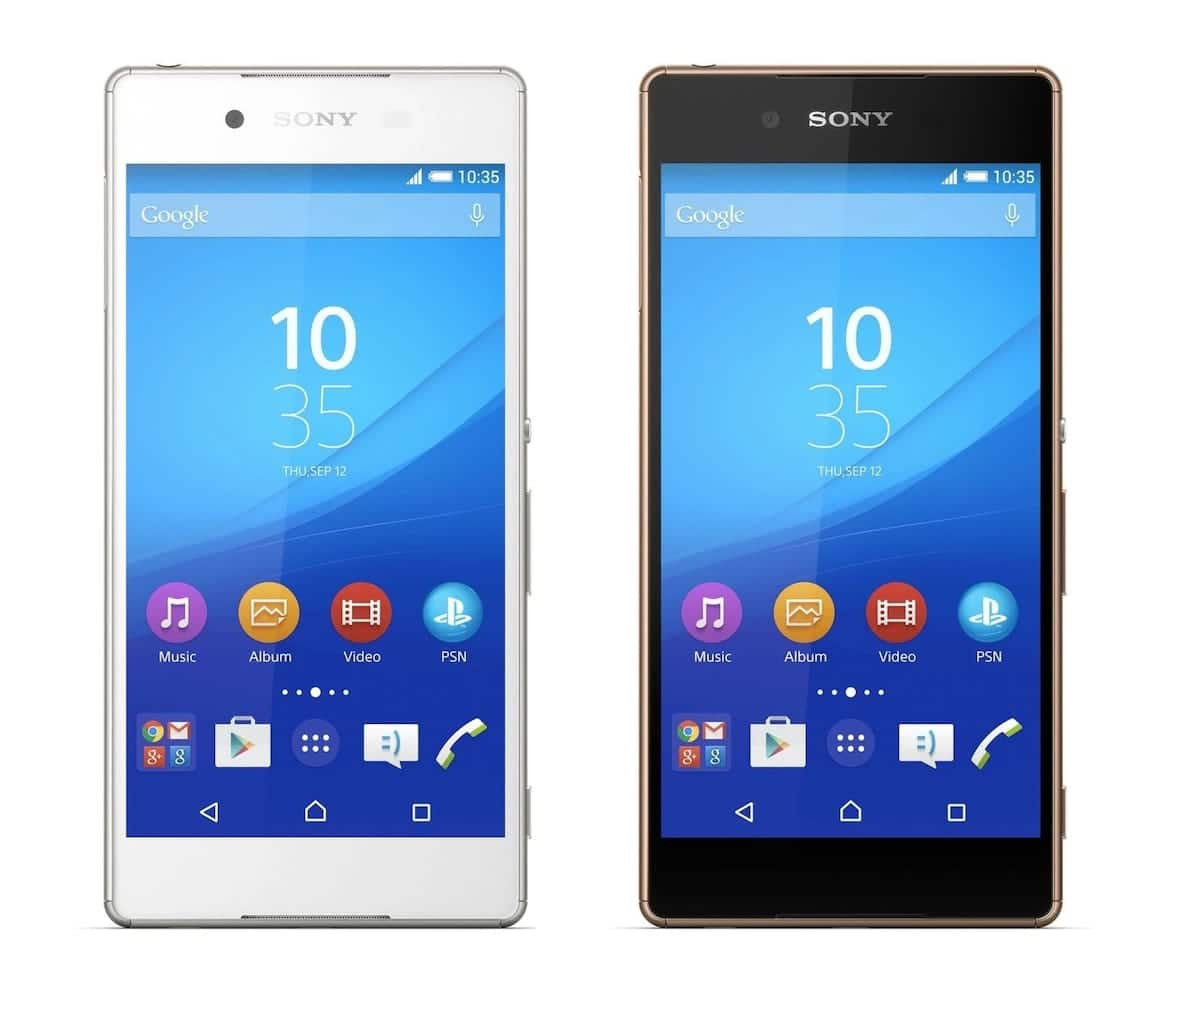 Sony xperia Z4 price in Kenya specs & review Sony Xperia Z4 price in Kenya Sony Xperia Z4 specs Sony Xperia Z4 review